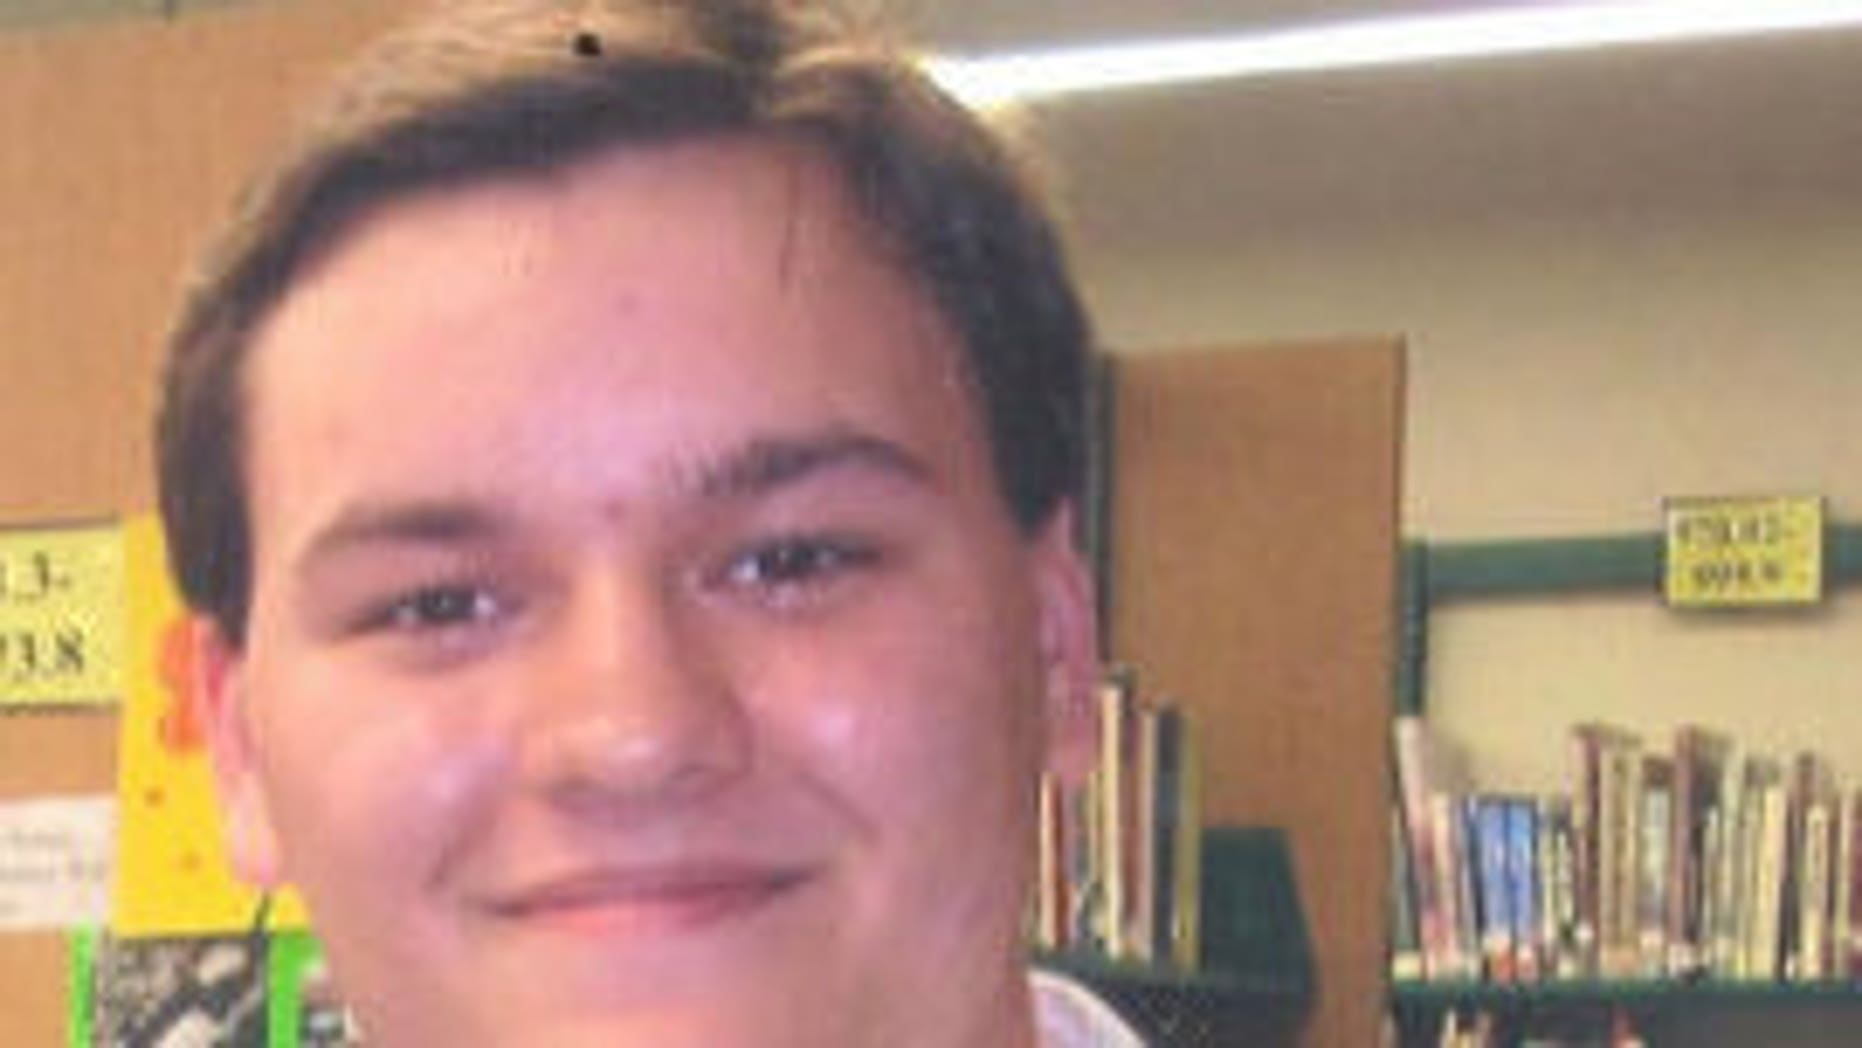 Sean Harrington won his fight to get the Pledge of Allegiance recited in classrooms at Arlington High School, following the approval of a new policy on Tuesday.